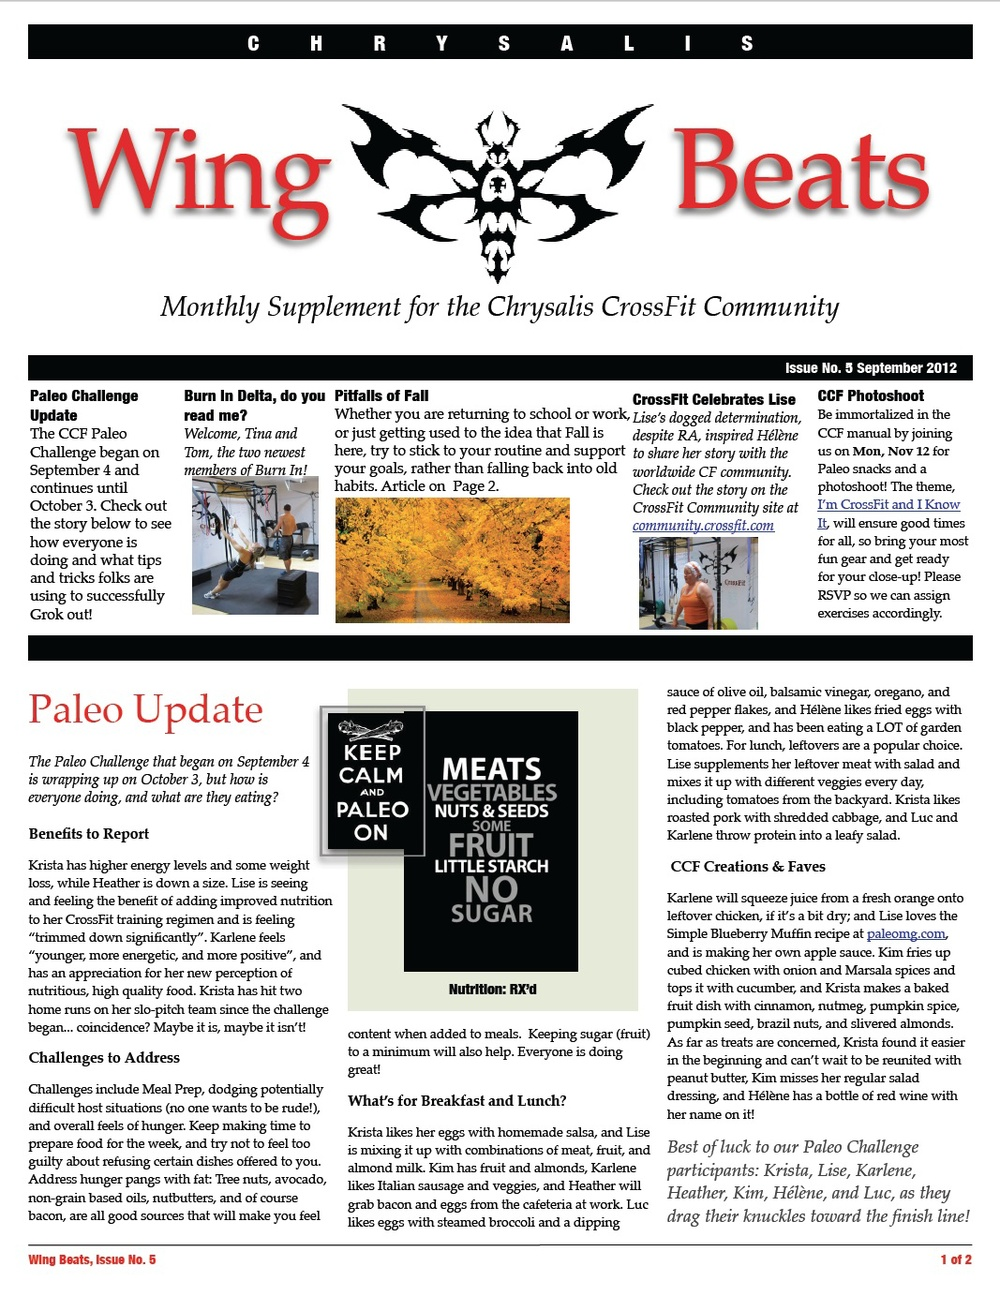 WingBeats Issue #5 - September 2012